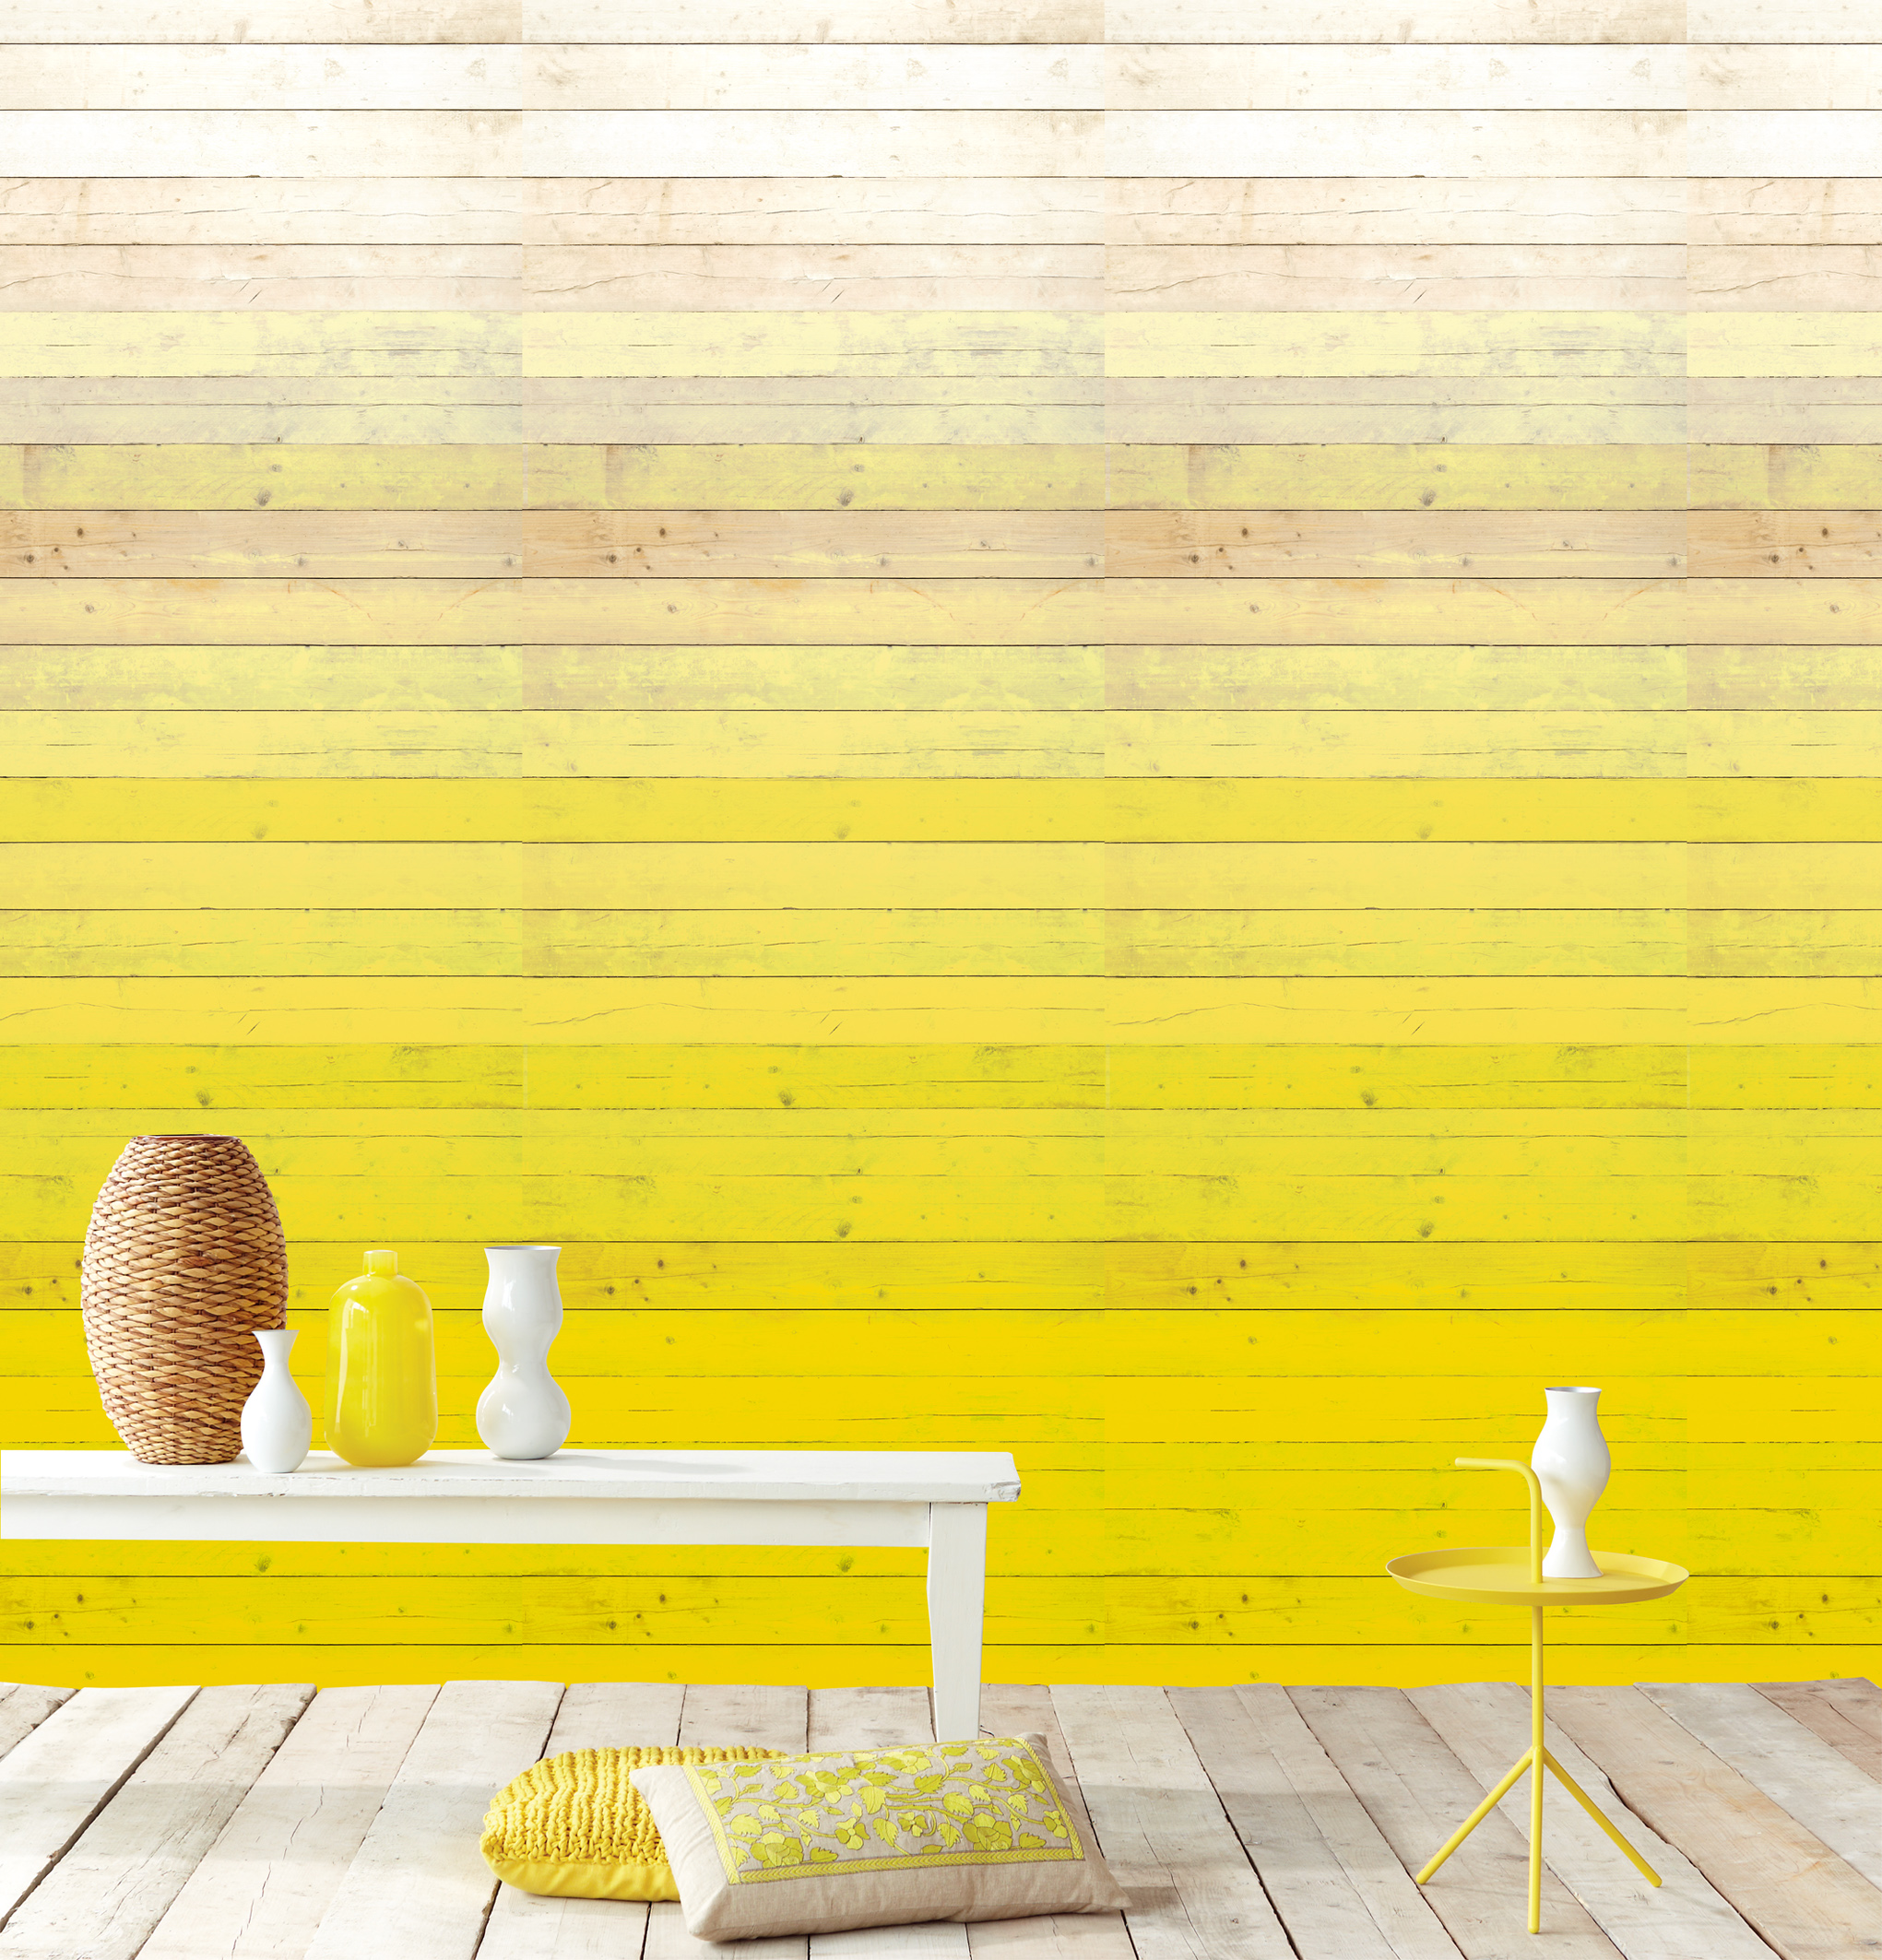 Introducing ibiza wallpaper collection brewster home for Brewster wallcovering wood panels mural